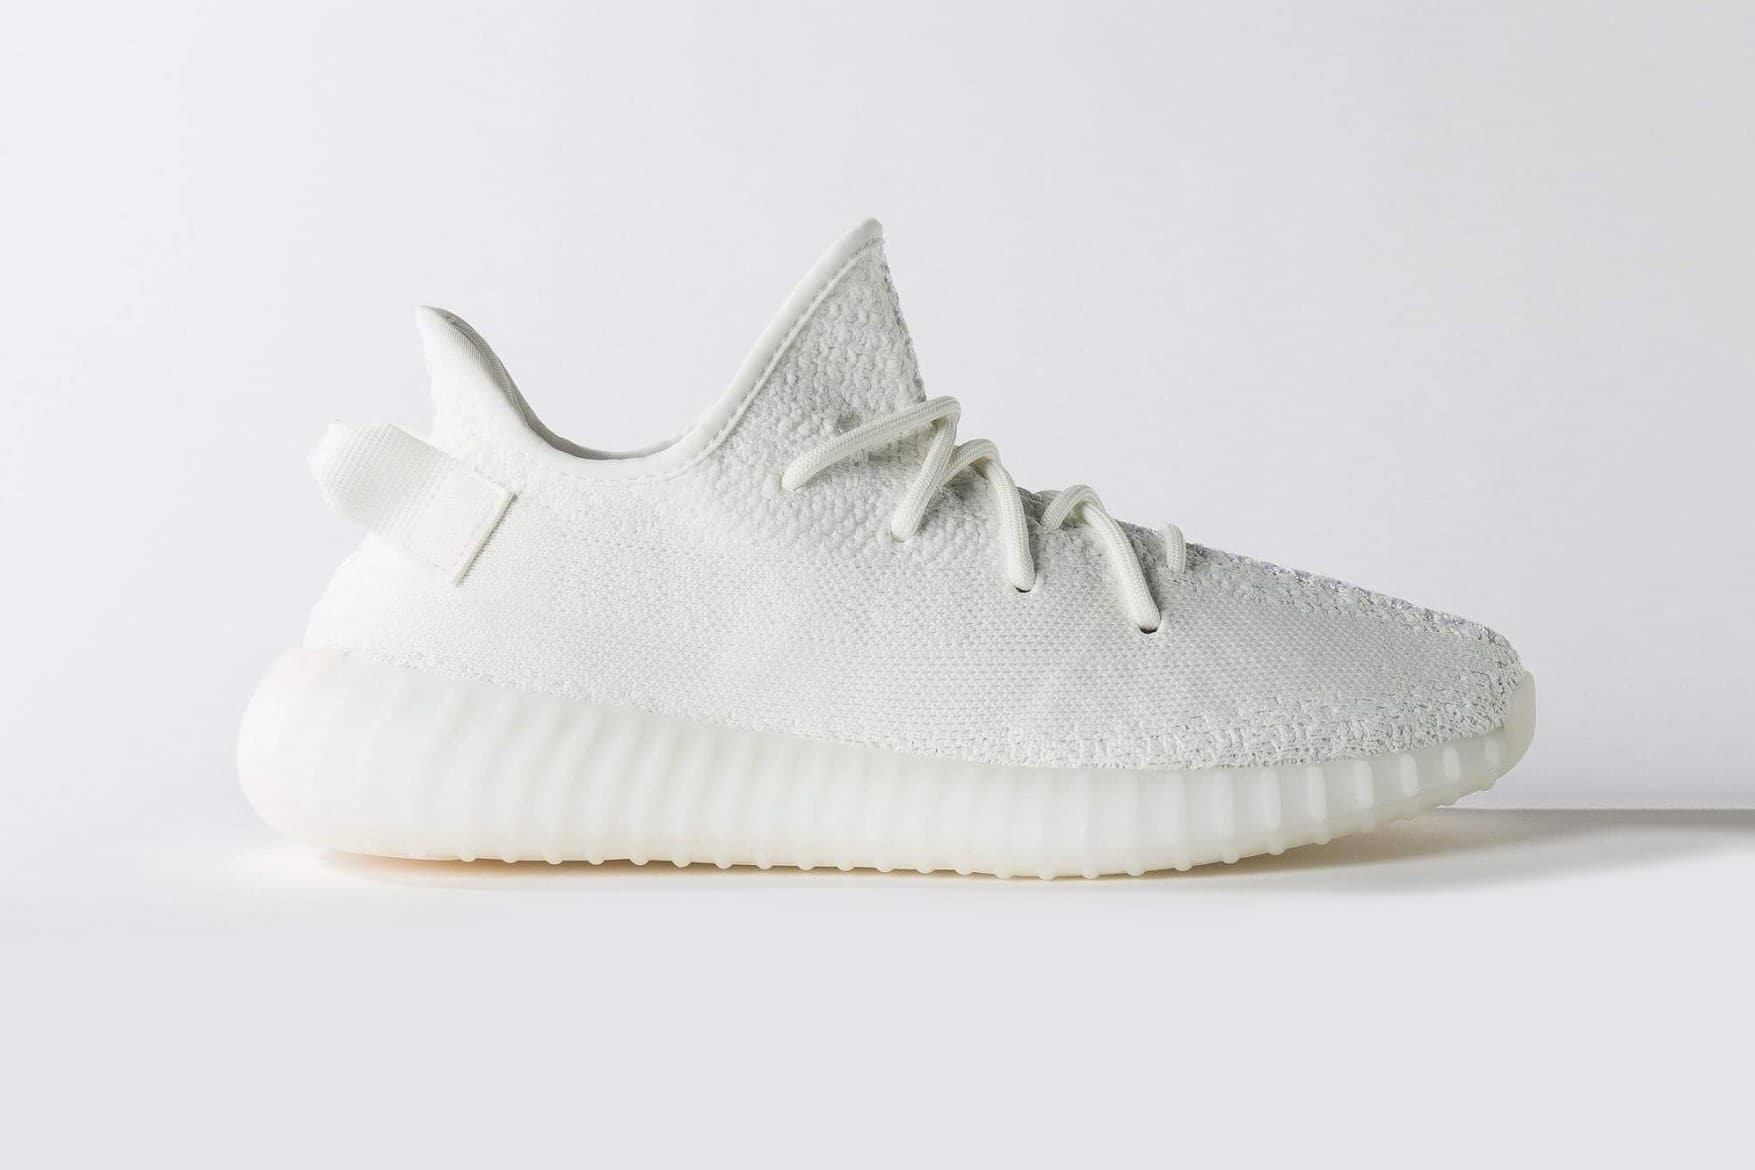 YEEZY BOOST 350 V2 Cream